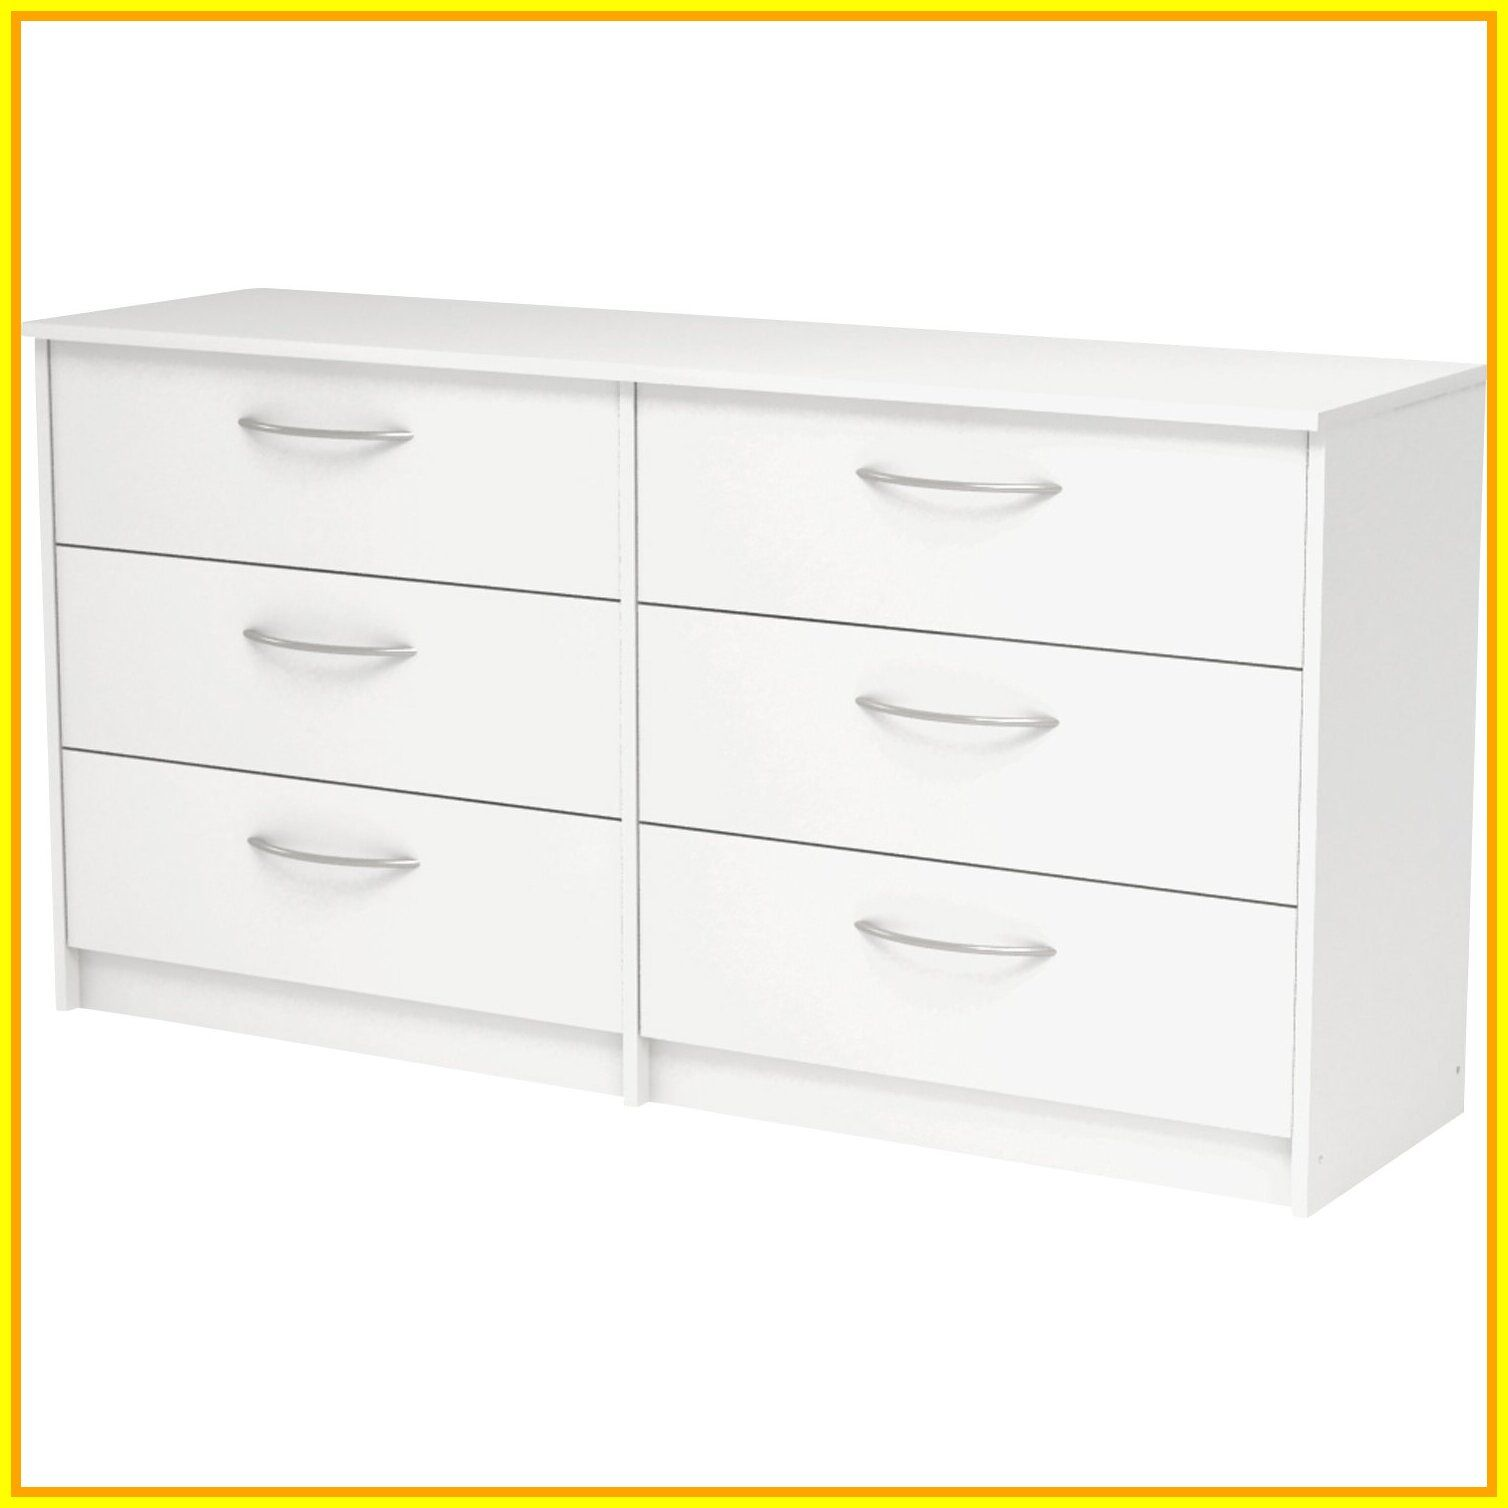 58 Reference Of 6 Drawer Double Dresser Review Cheap White Dresser Dresser Drawers 6 Drawer Dresser [ 1508 x 1508 Pixel ]